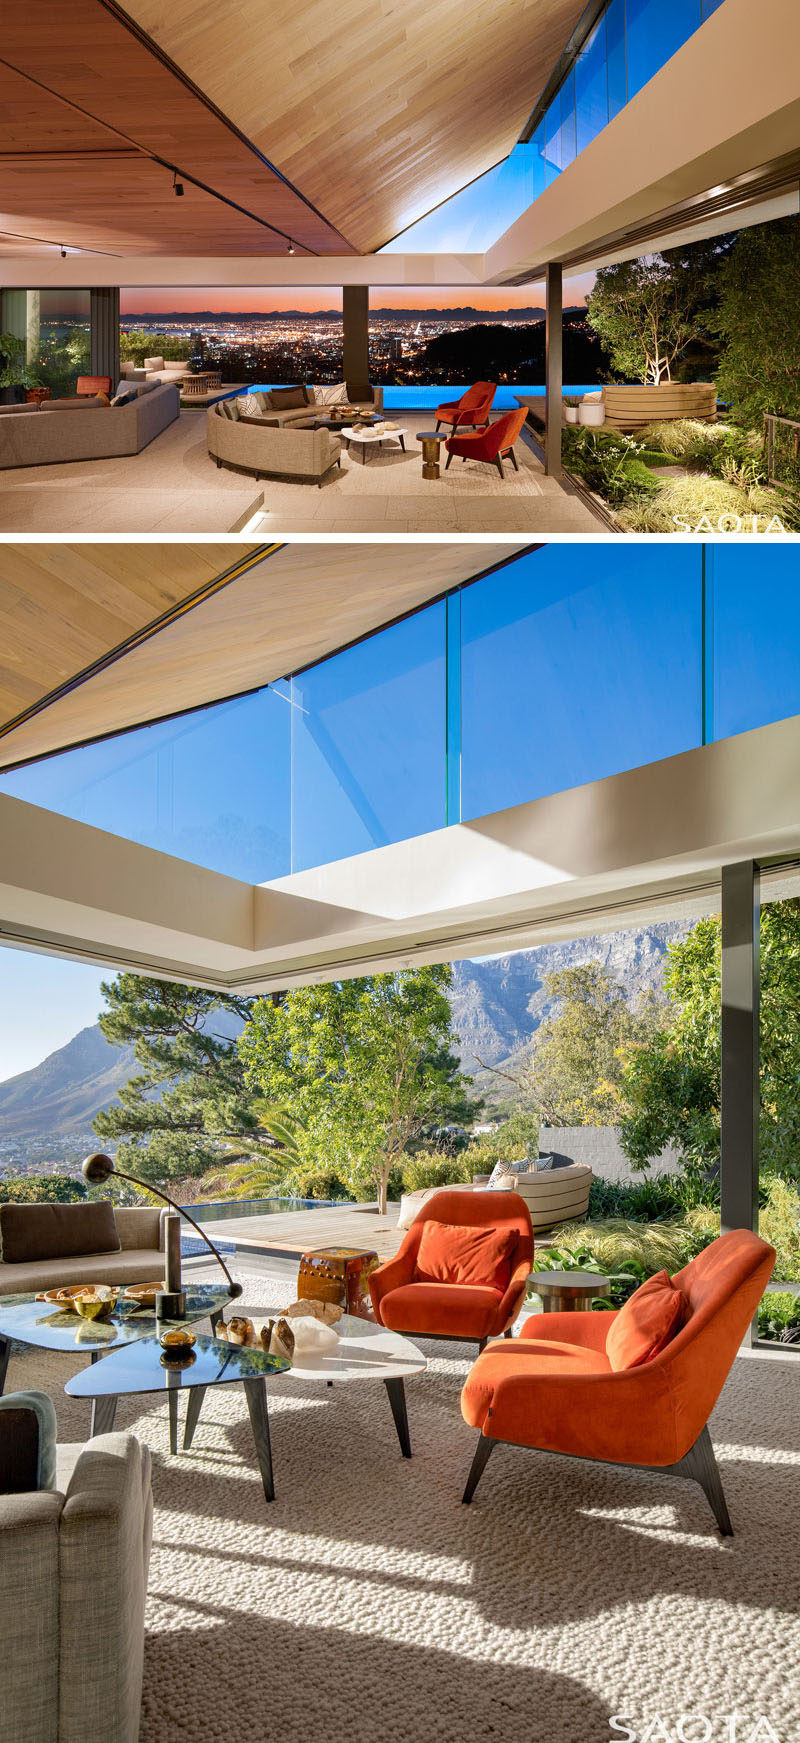 This modern living room has large sliding glass walls that connect the interior to the garden, the swimming pool, and the outdoor decks. #ModernLivingEoom #Windows